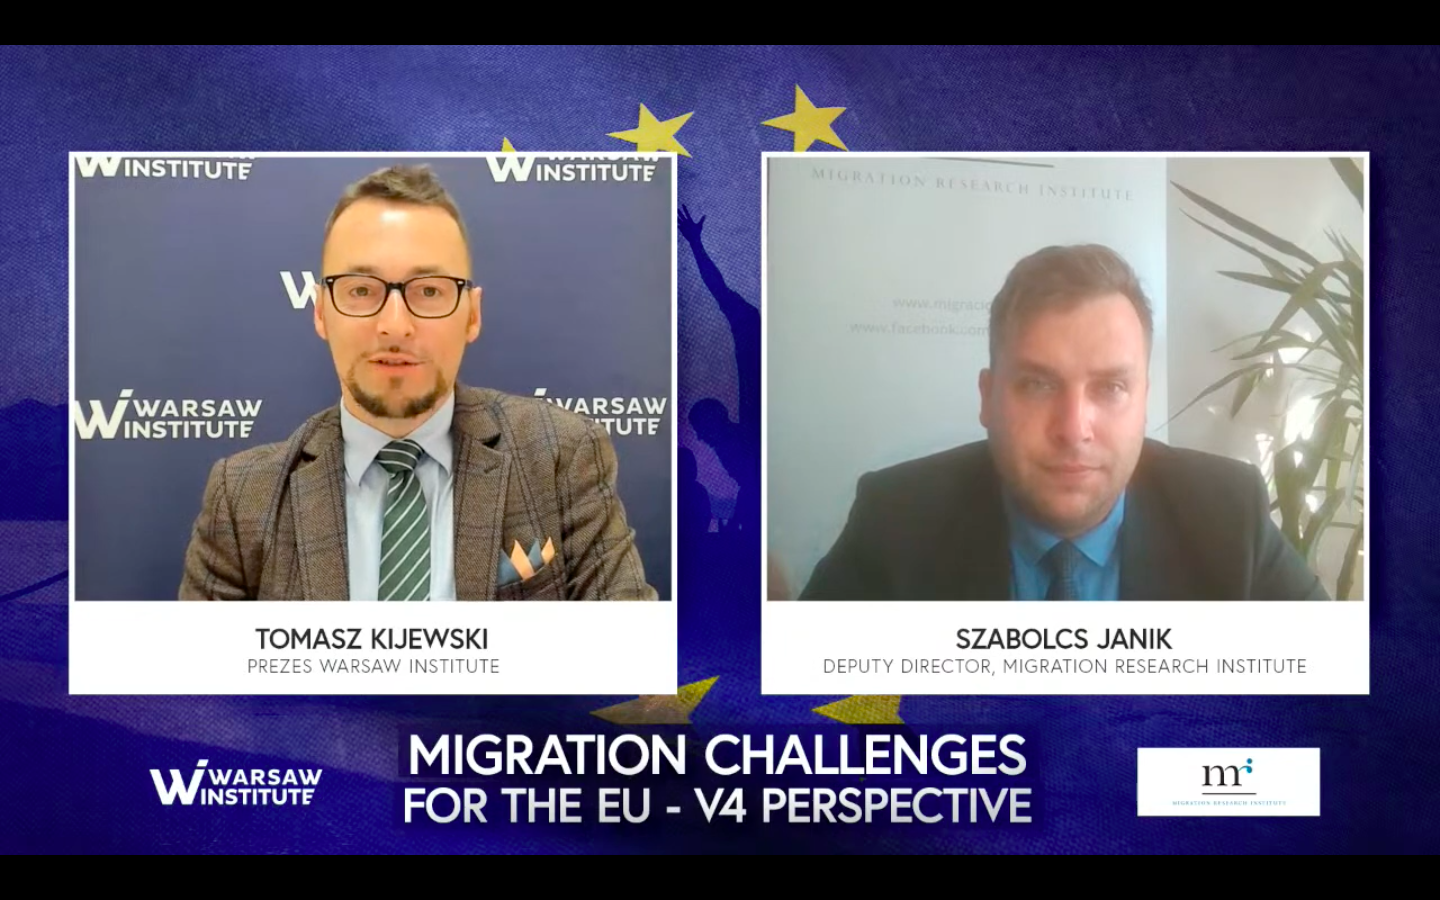 Event Summary: Migration Challenges for the EU – V4 Perspective